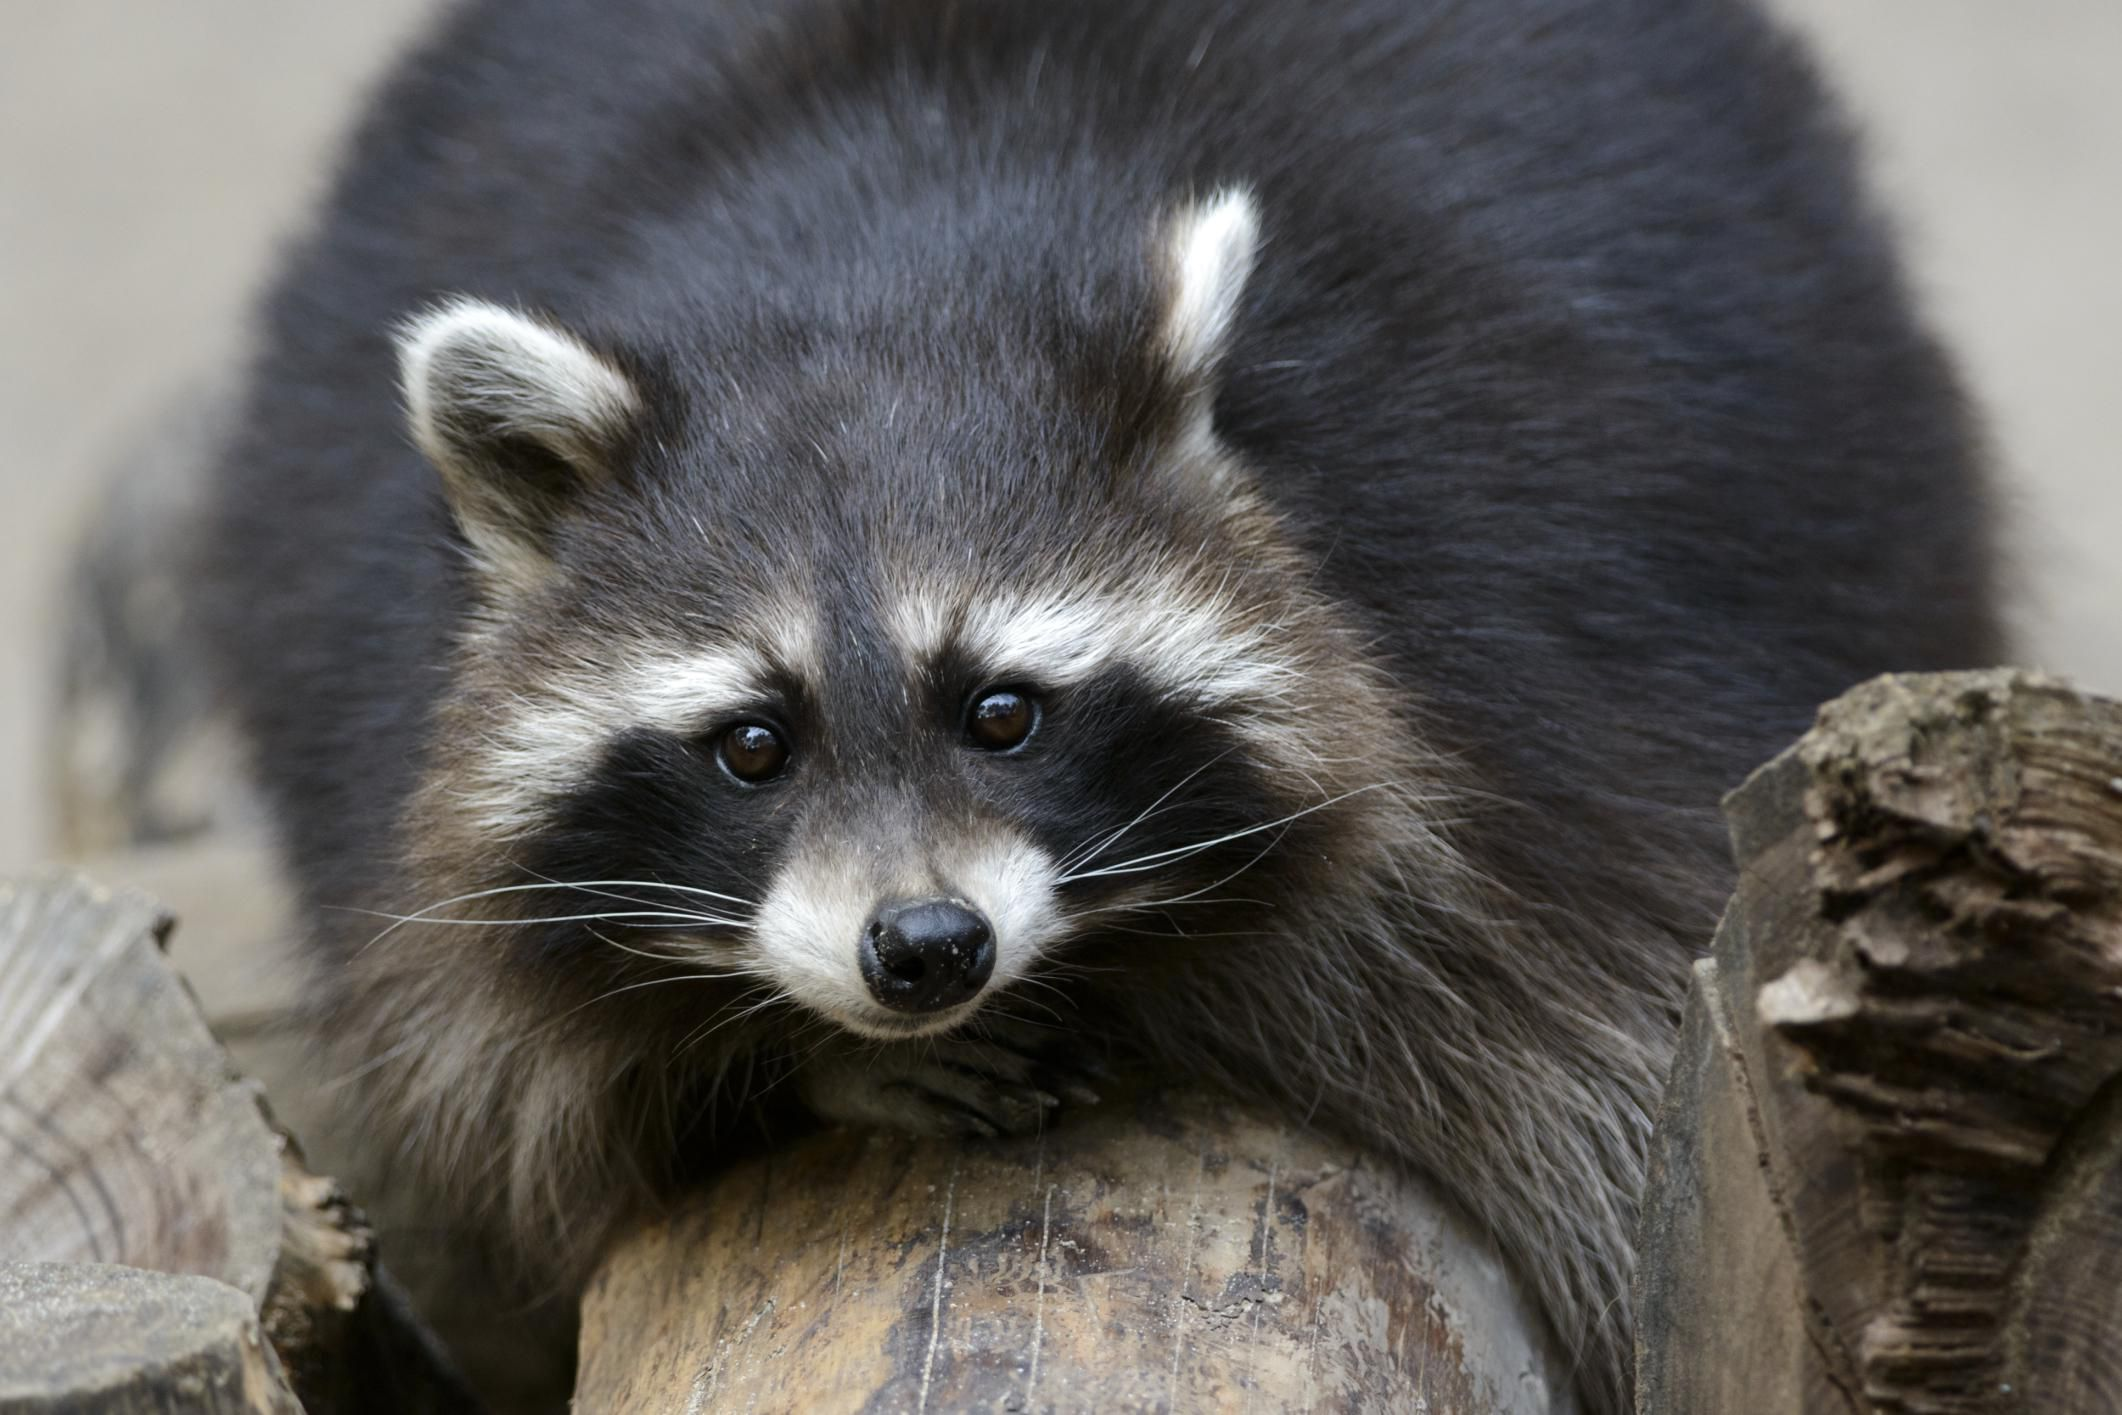 Wild Animals as Pets - Legal and Ethical Issues